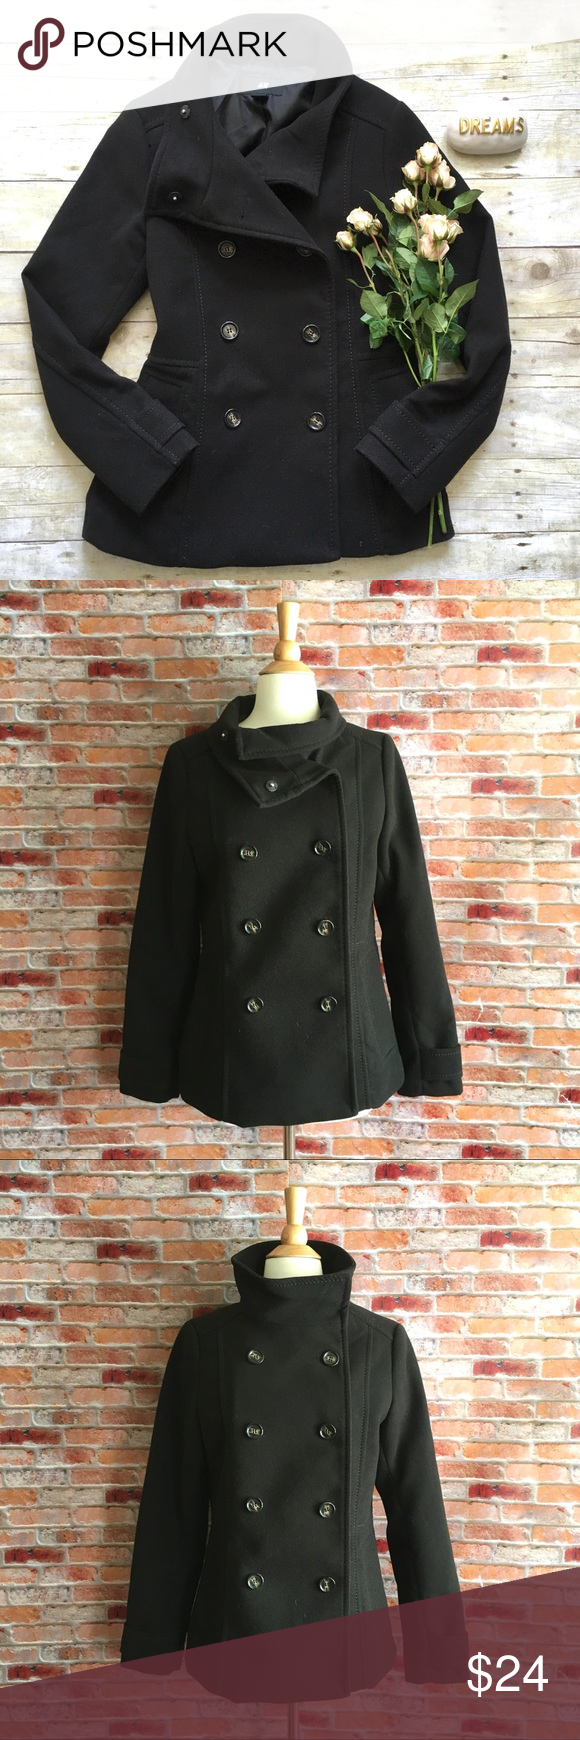 H&M black double breasted pea coat Black pea coat